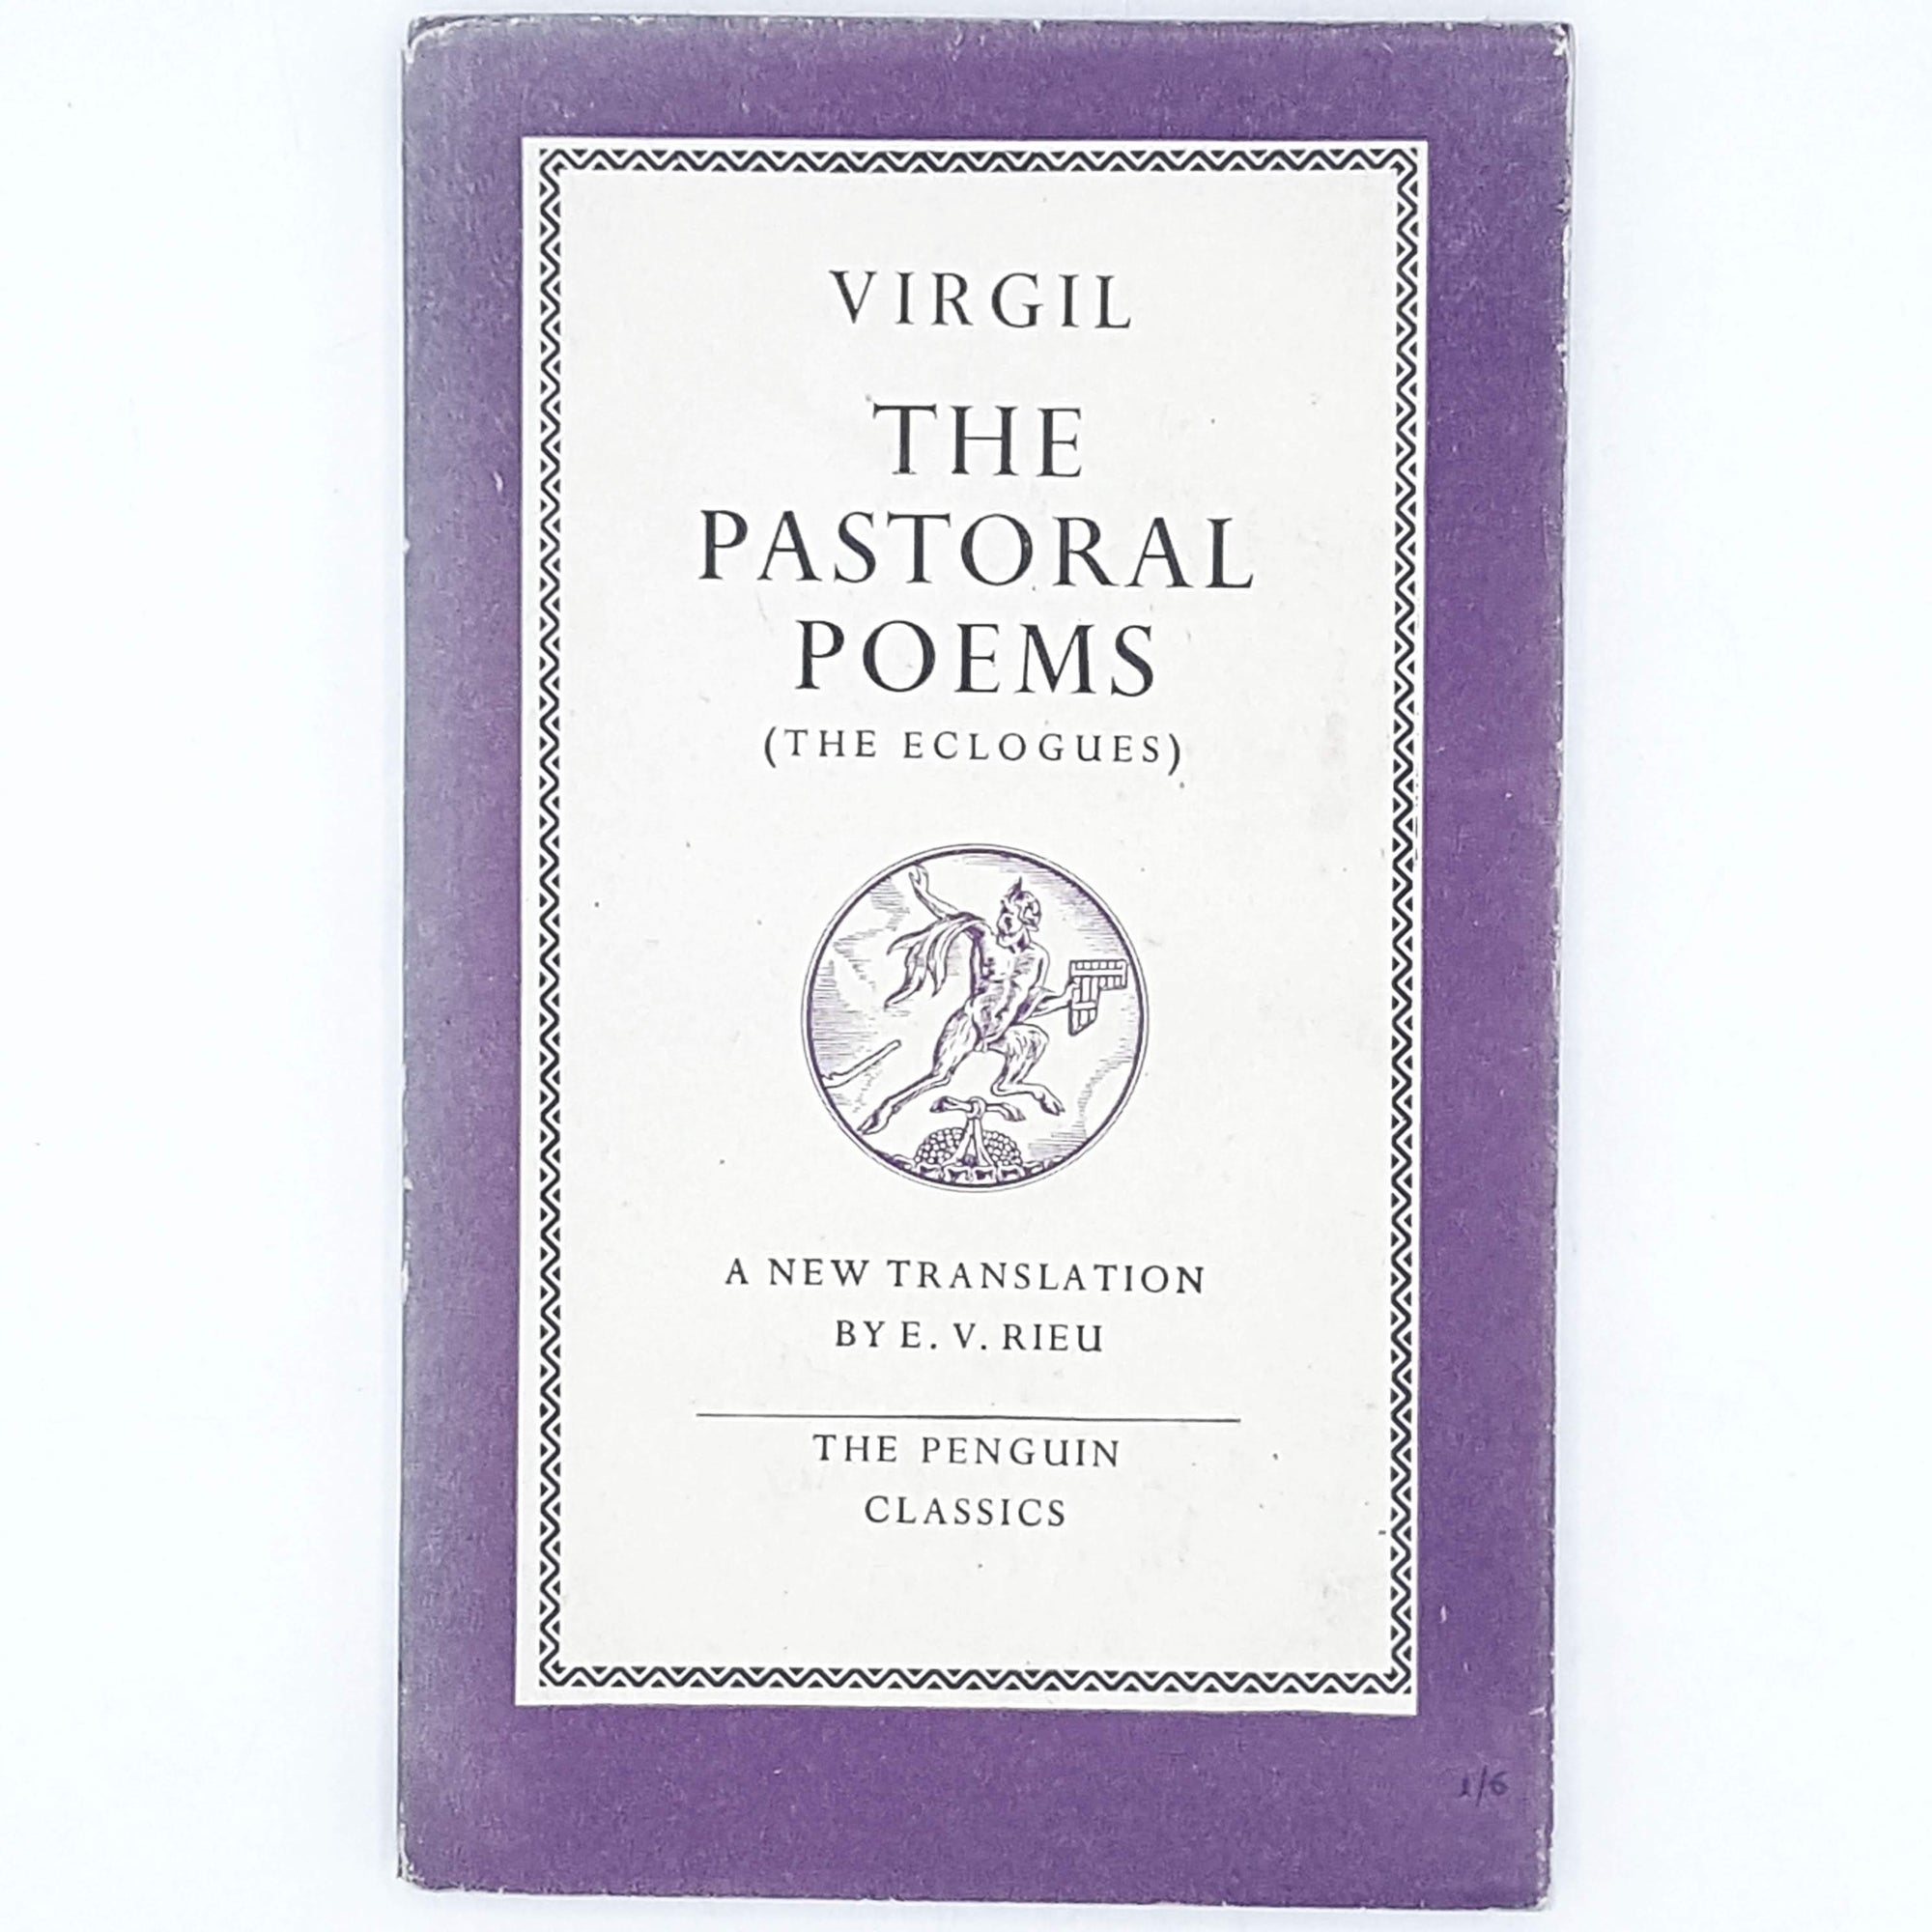 First Edition Virgil The Pastoral Poems 1949